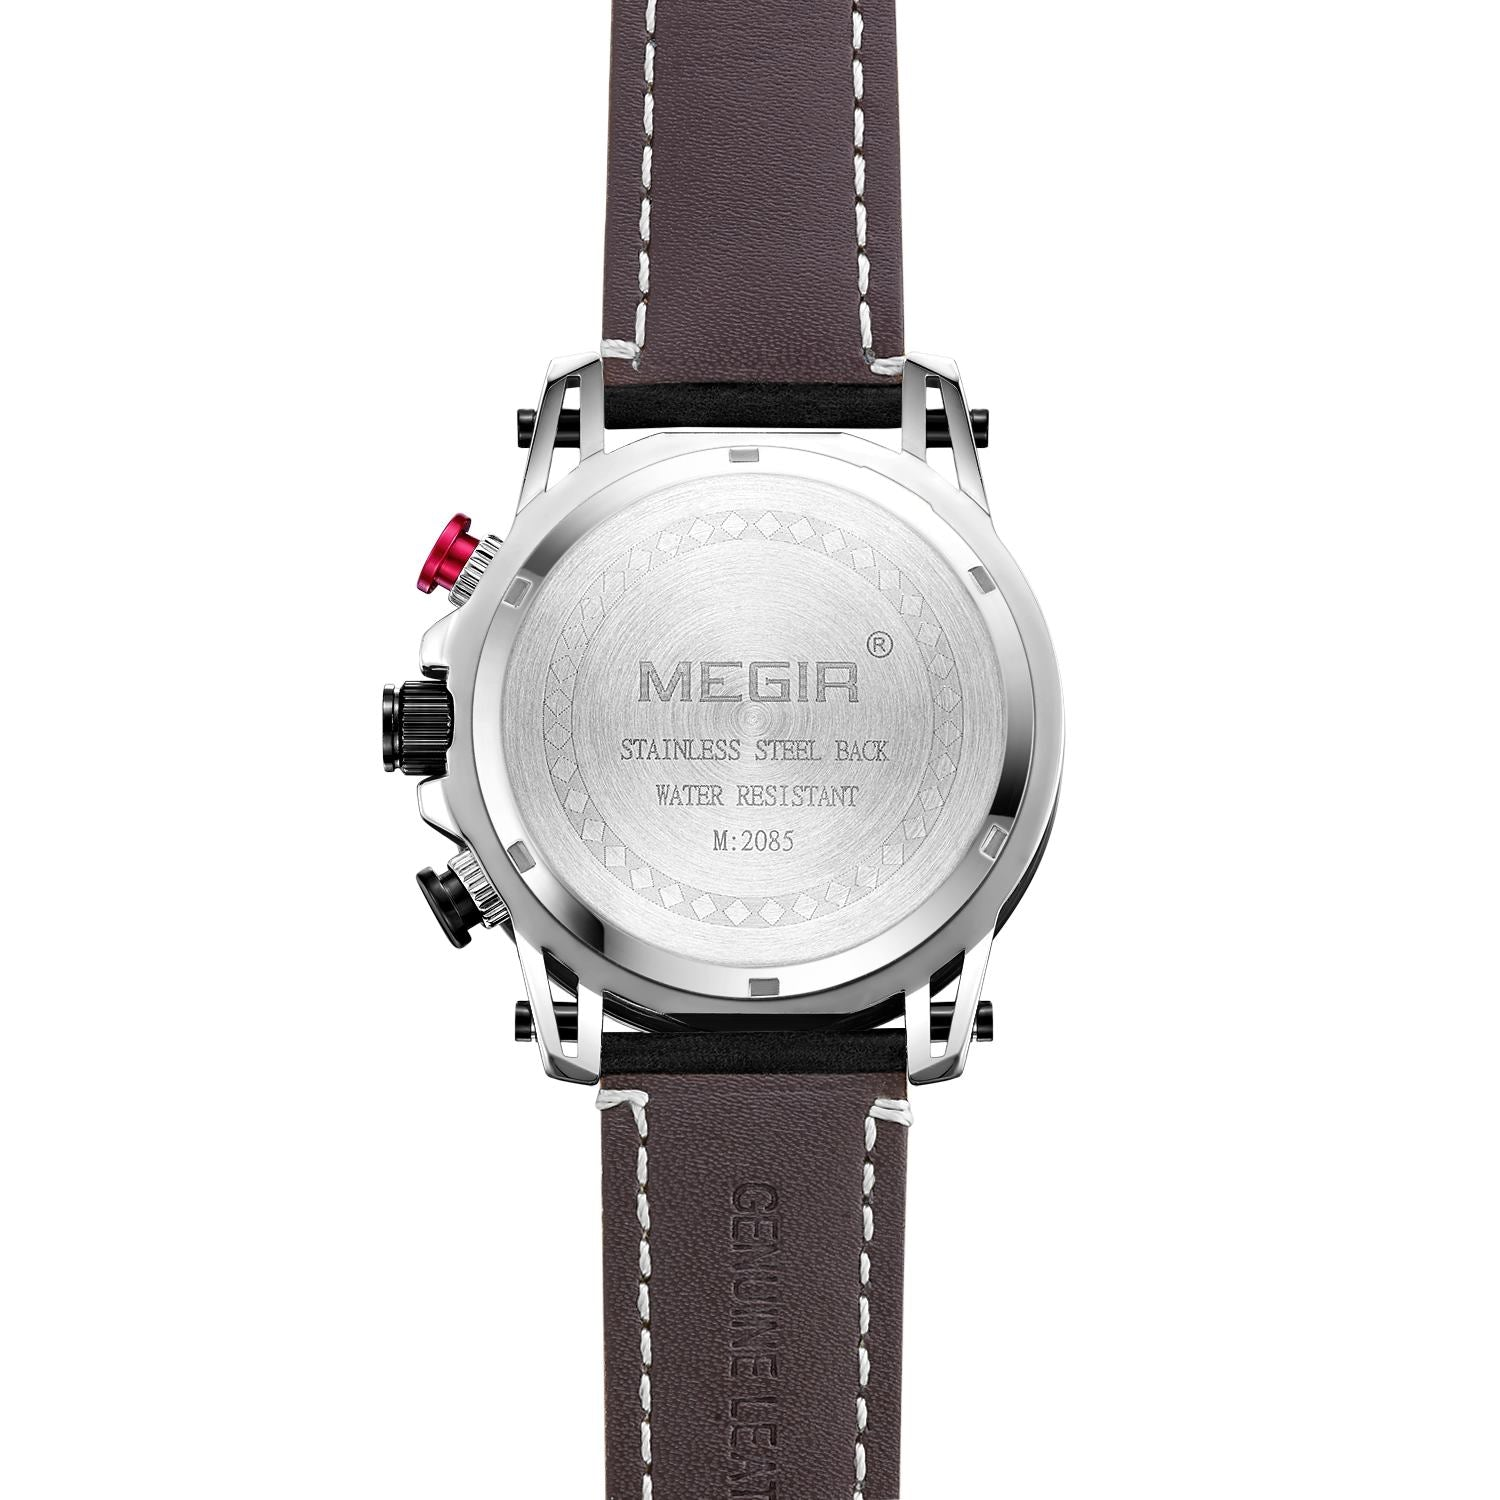 MEGIR sport watches luxury brand leather 2085 - MEGIR